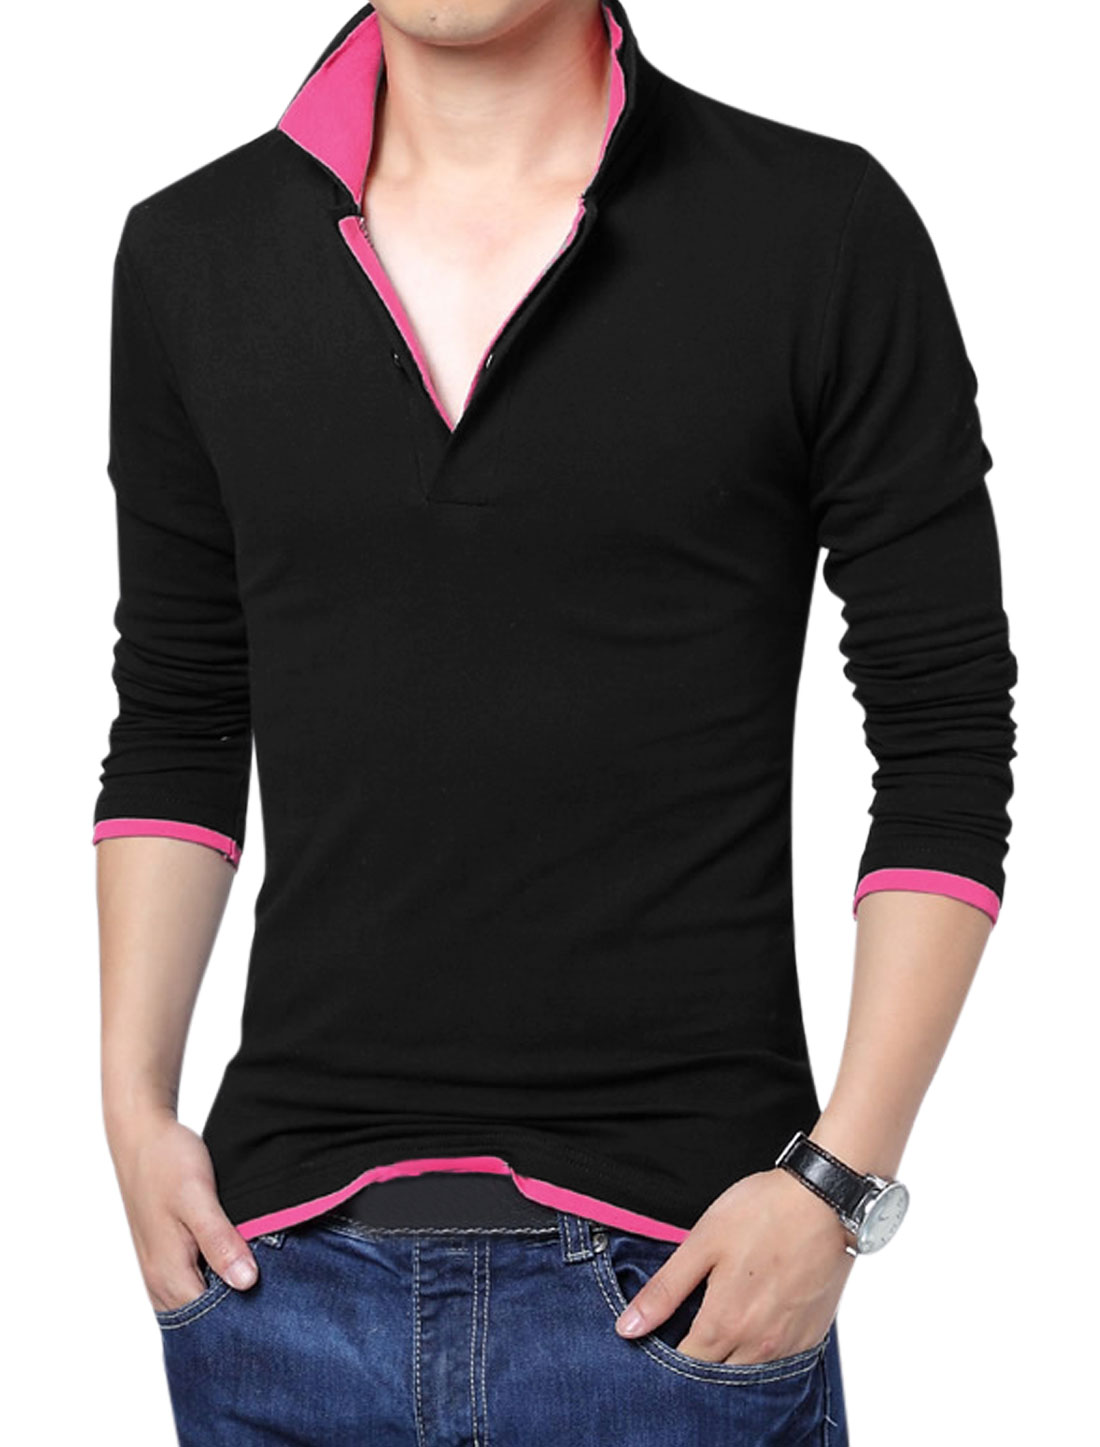 Men Simple Layered Point Collar Long Sleeve Leisure Polo Shirt Black Fuchsia L